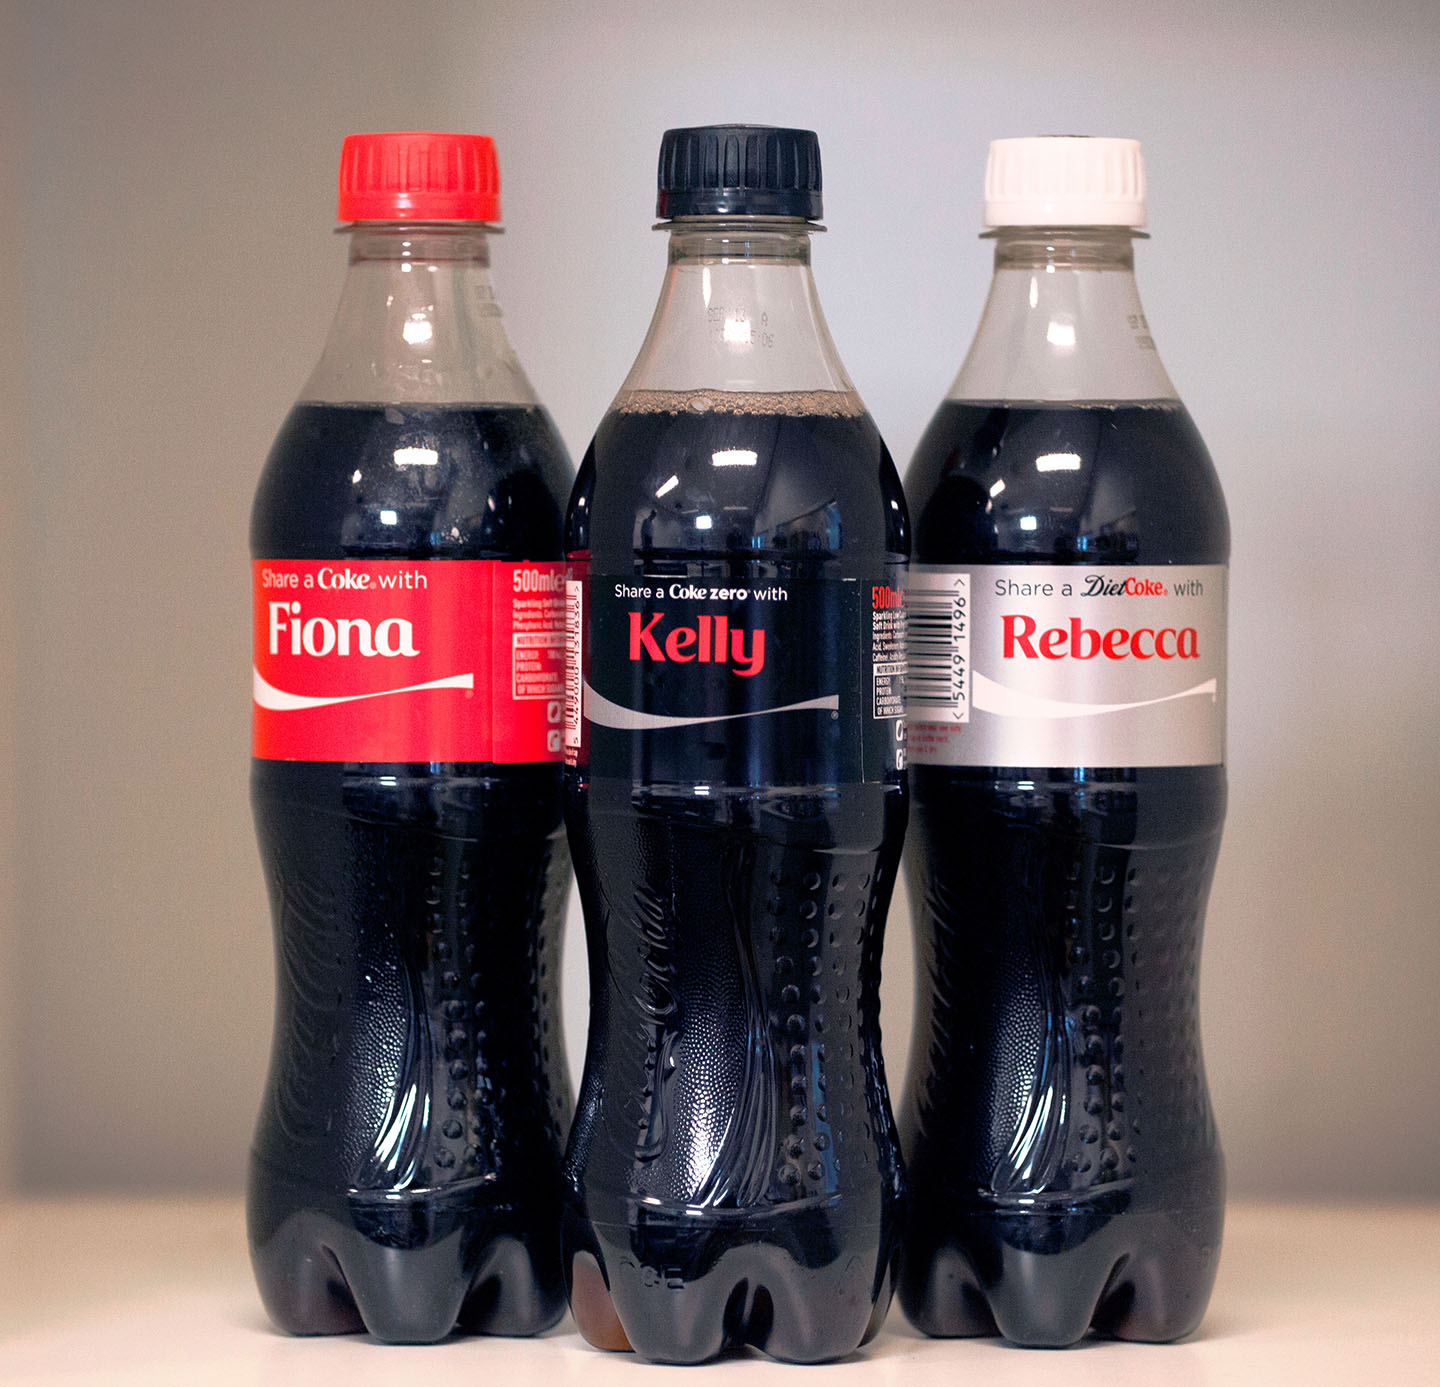 which coca cola products are most likely tu lose customers to coke zero